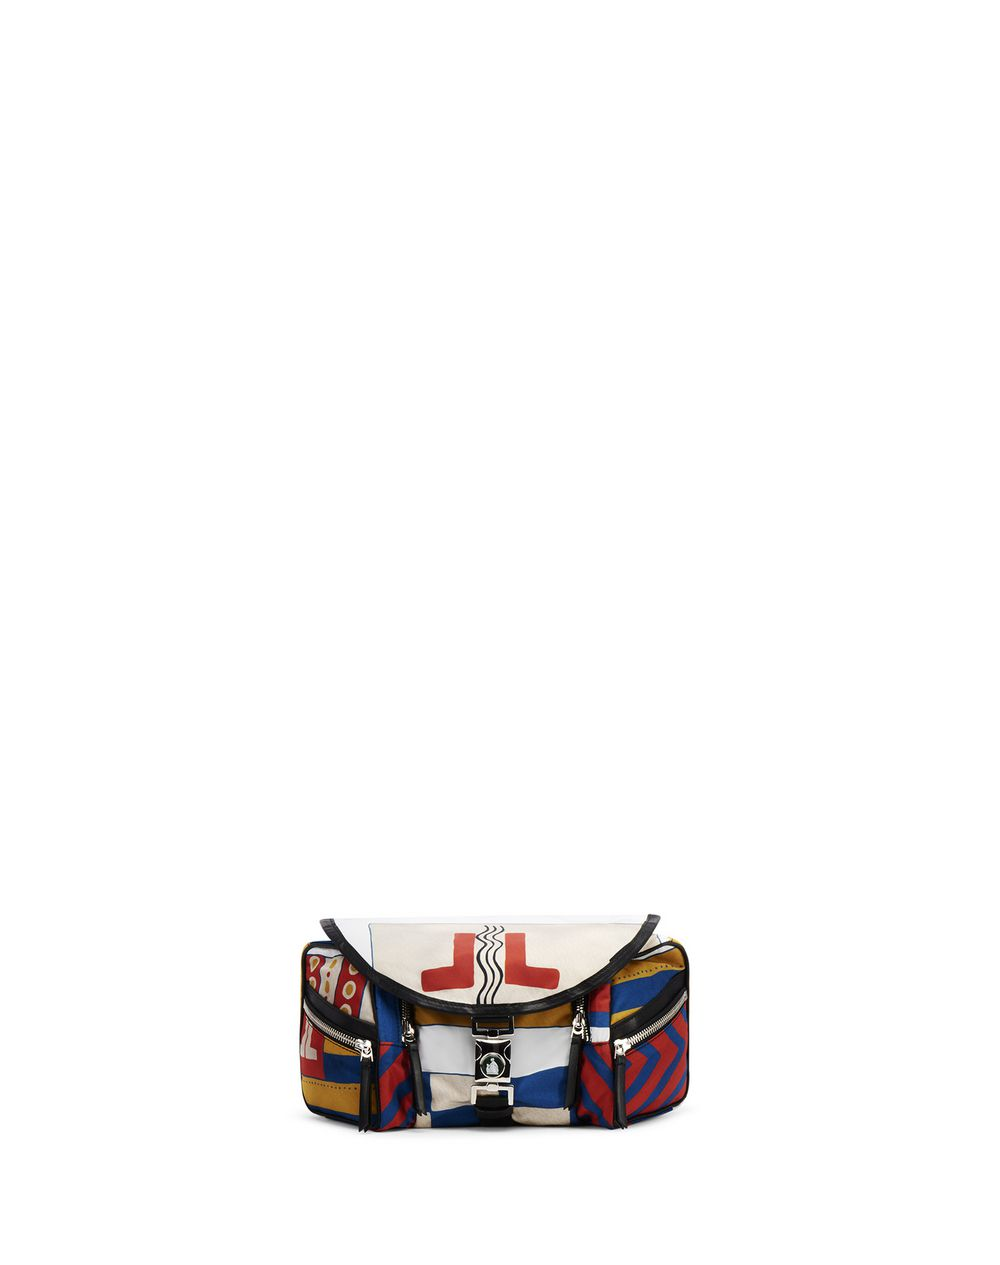 LANVIN FLAGS VENICE BELT BAG - Lanvin